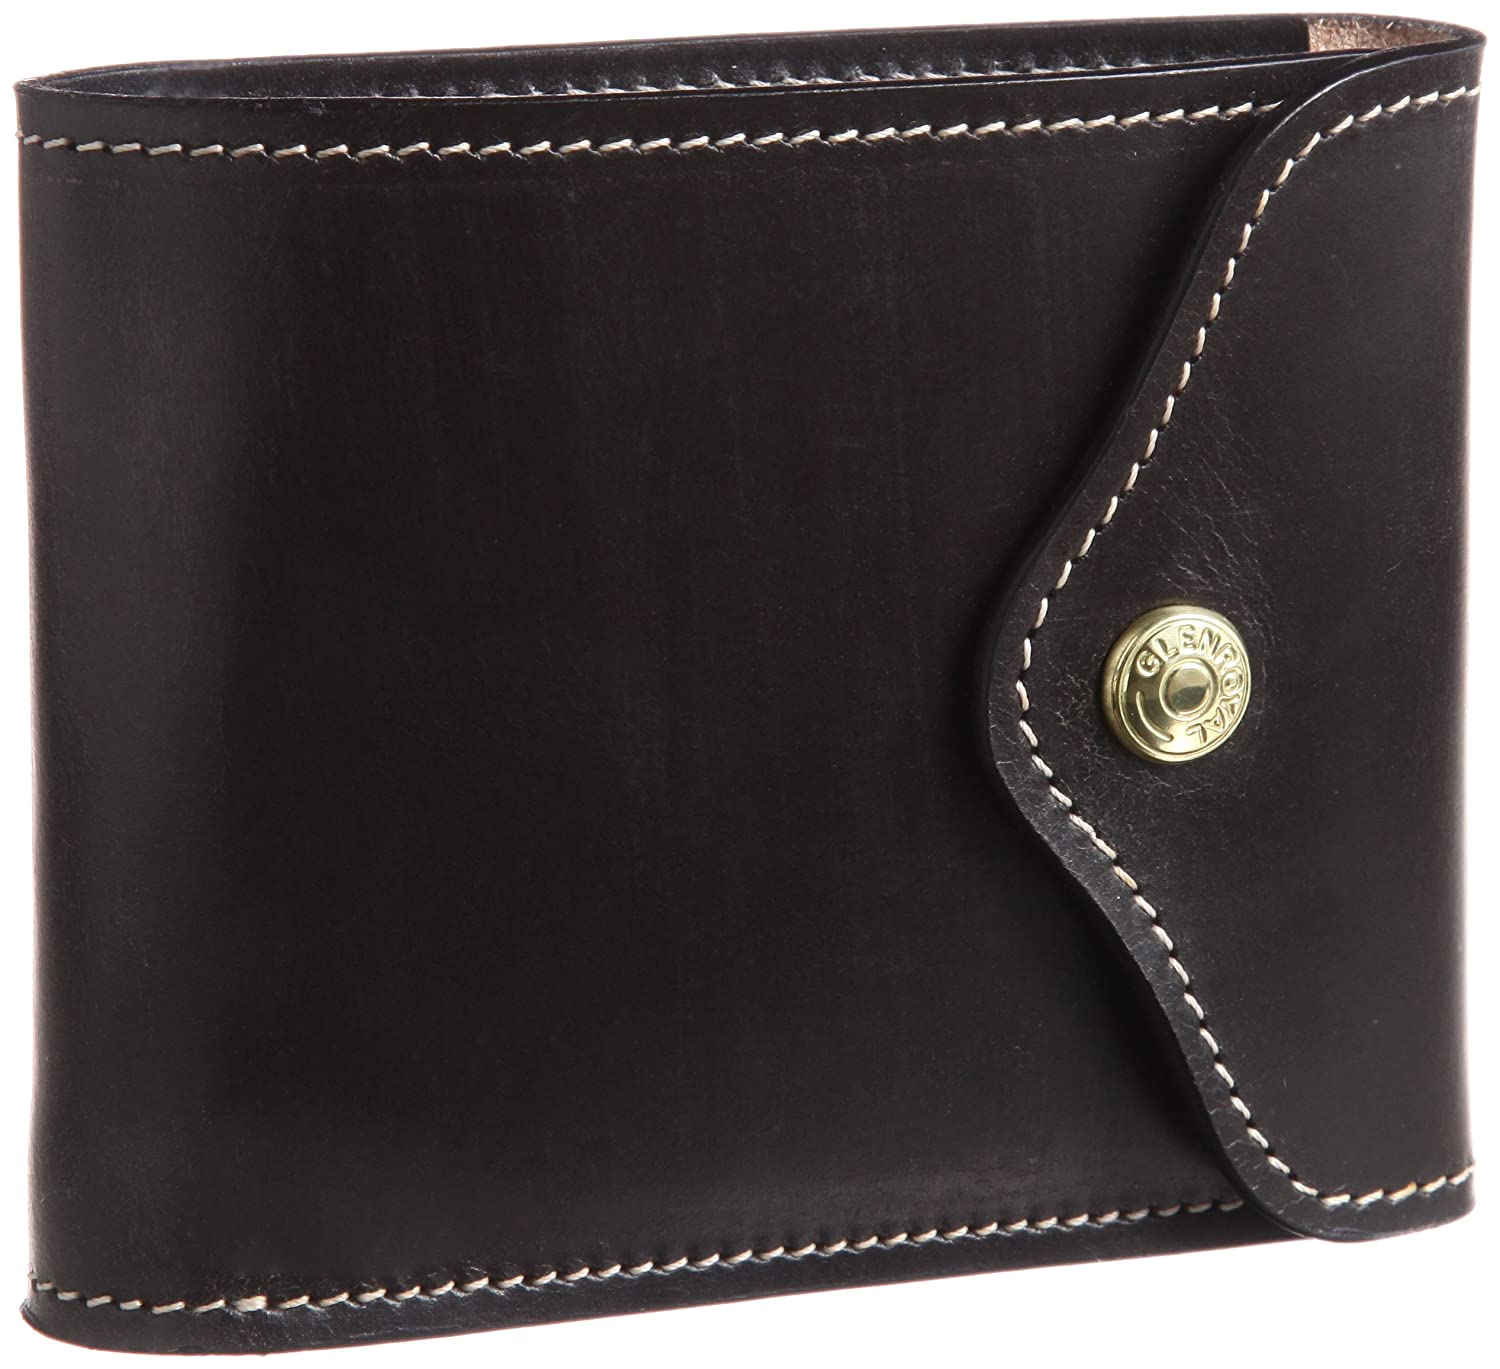 [グレンロイヤル] 財布 SLIDING WALLET 03-5956 B0087APHV2 New Black New Black